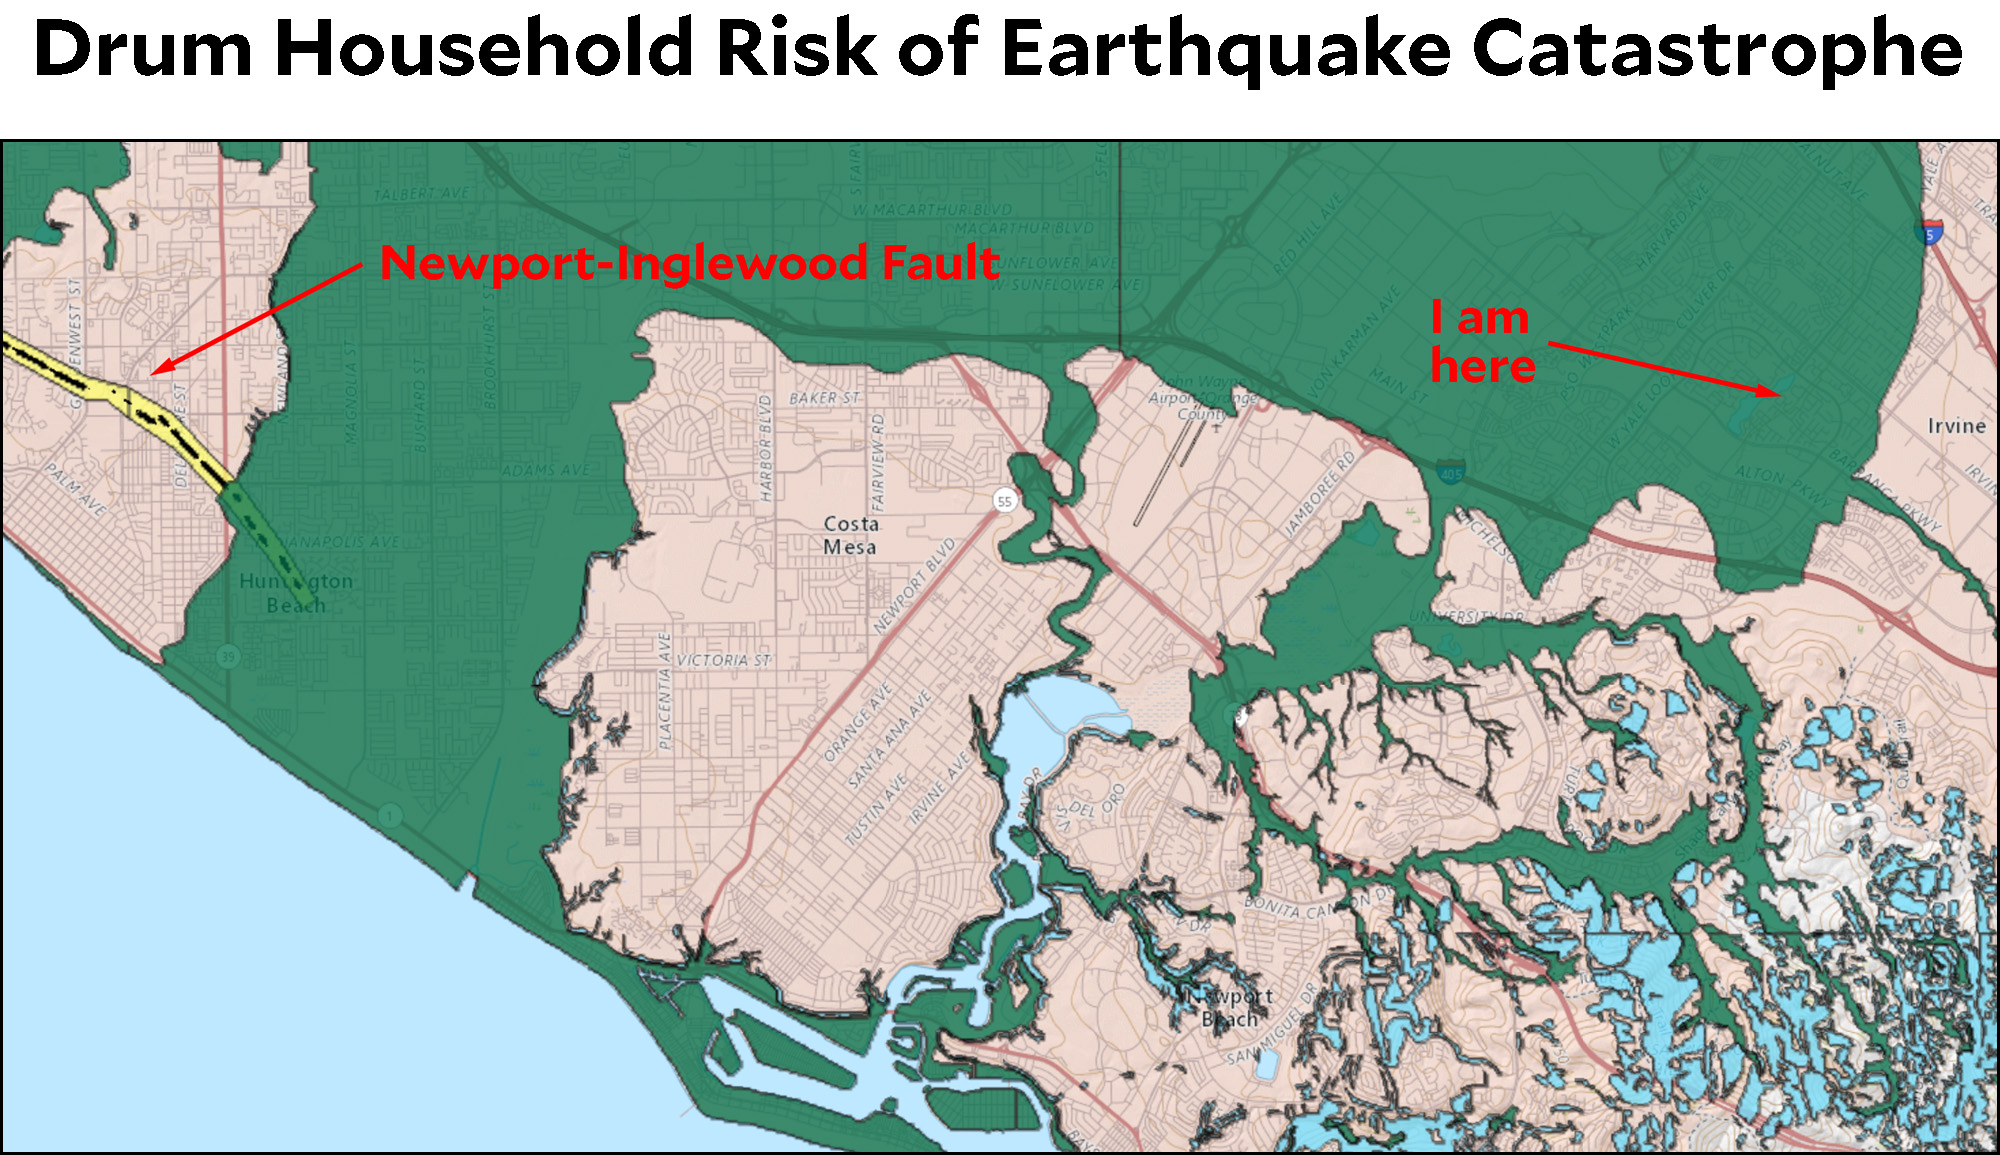 California introduces handy earthquake map mother jones the green color indicates that i live in both a fault zone and a liquification zone this is because most of irvine rests on a giant foundation of mud gumiabroncs Gallery